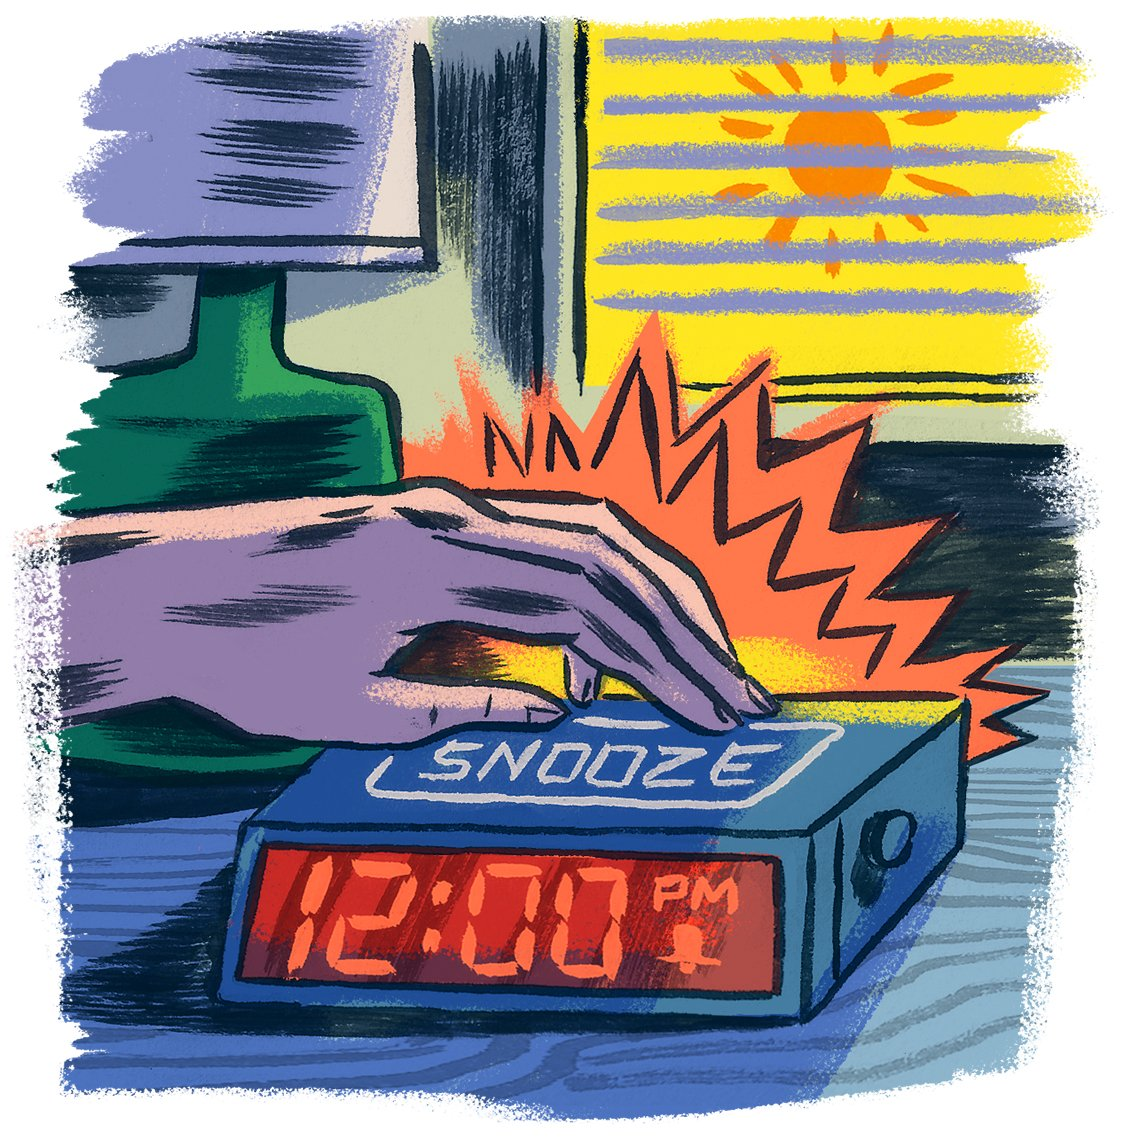 illustration of a hand hitting the snooze button on an alarm clock